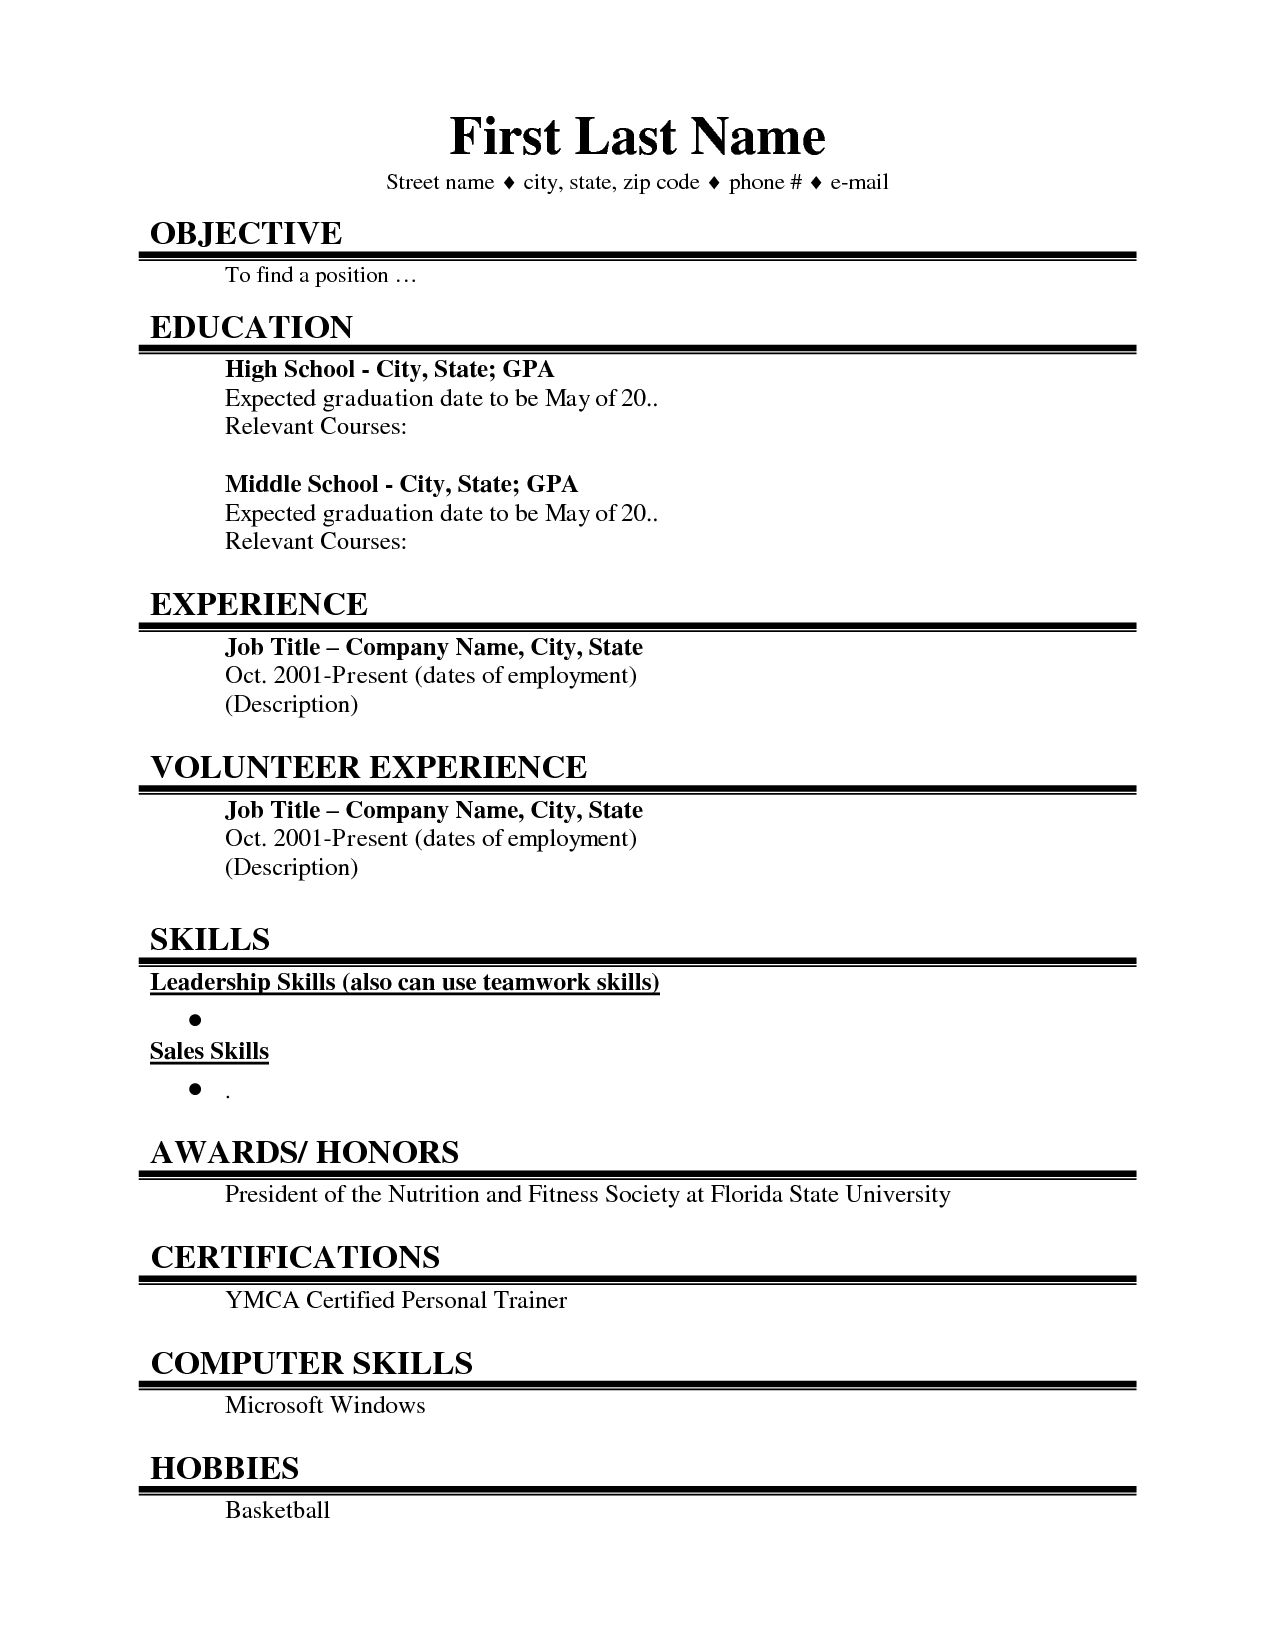 First Job Resume   Google Search